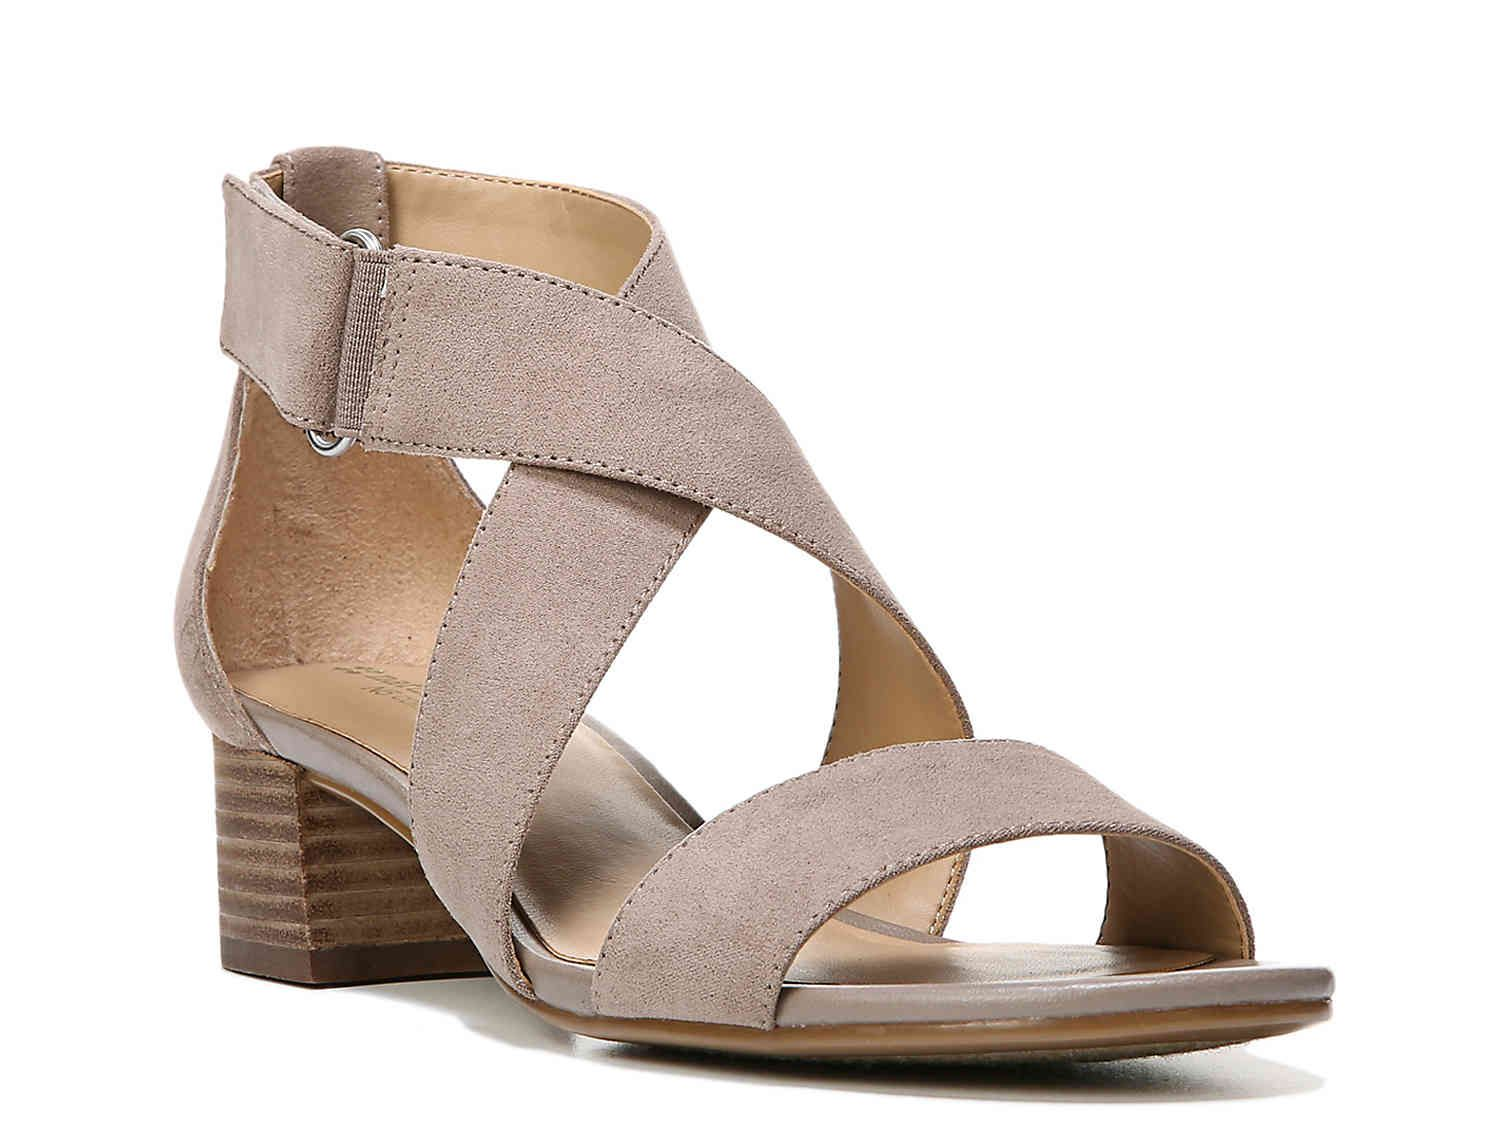 4892d86fad0 Adele Sandal.  49.95. At DSW NUDE   available in BLACK ALSO